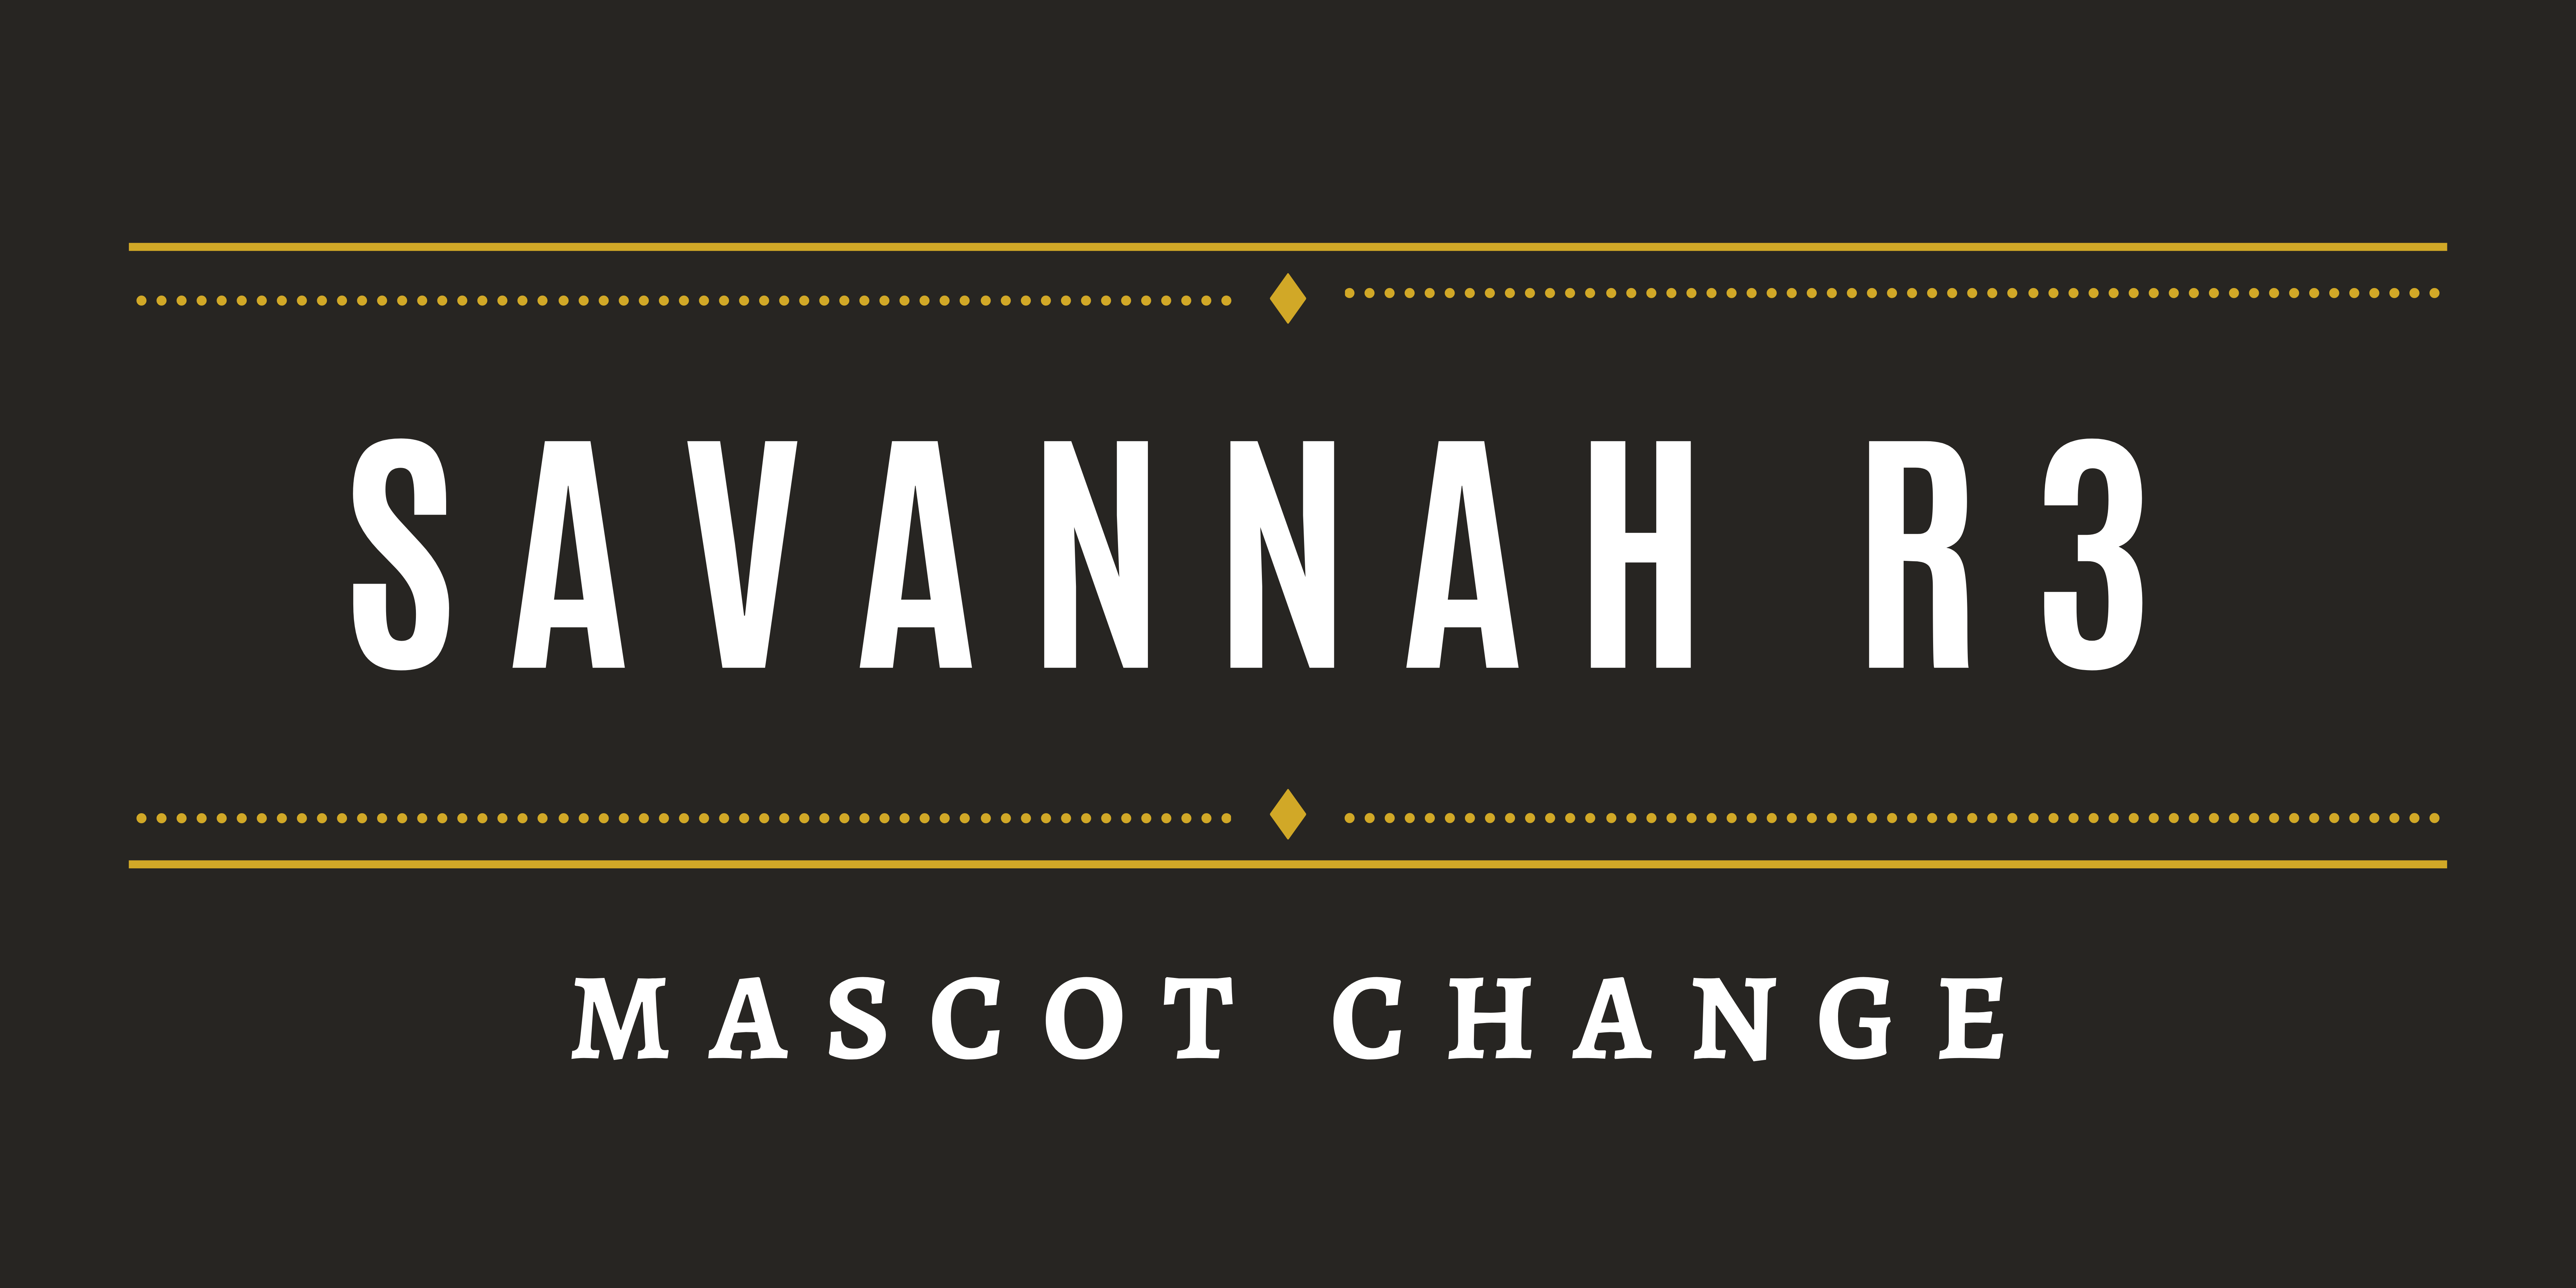 Savannah r3 mascot change black banner with white letters